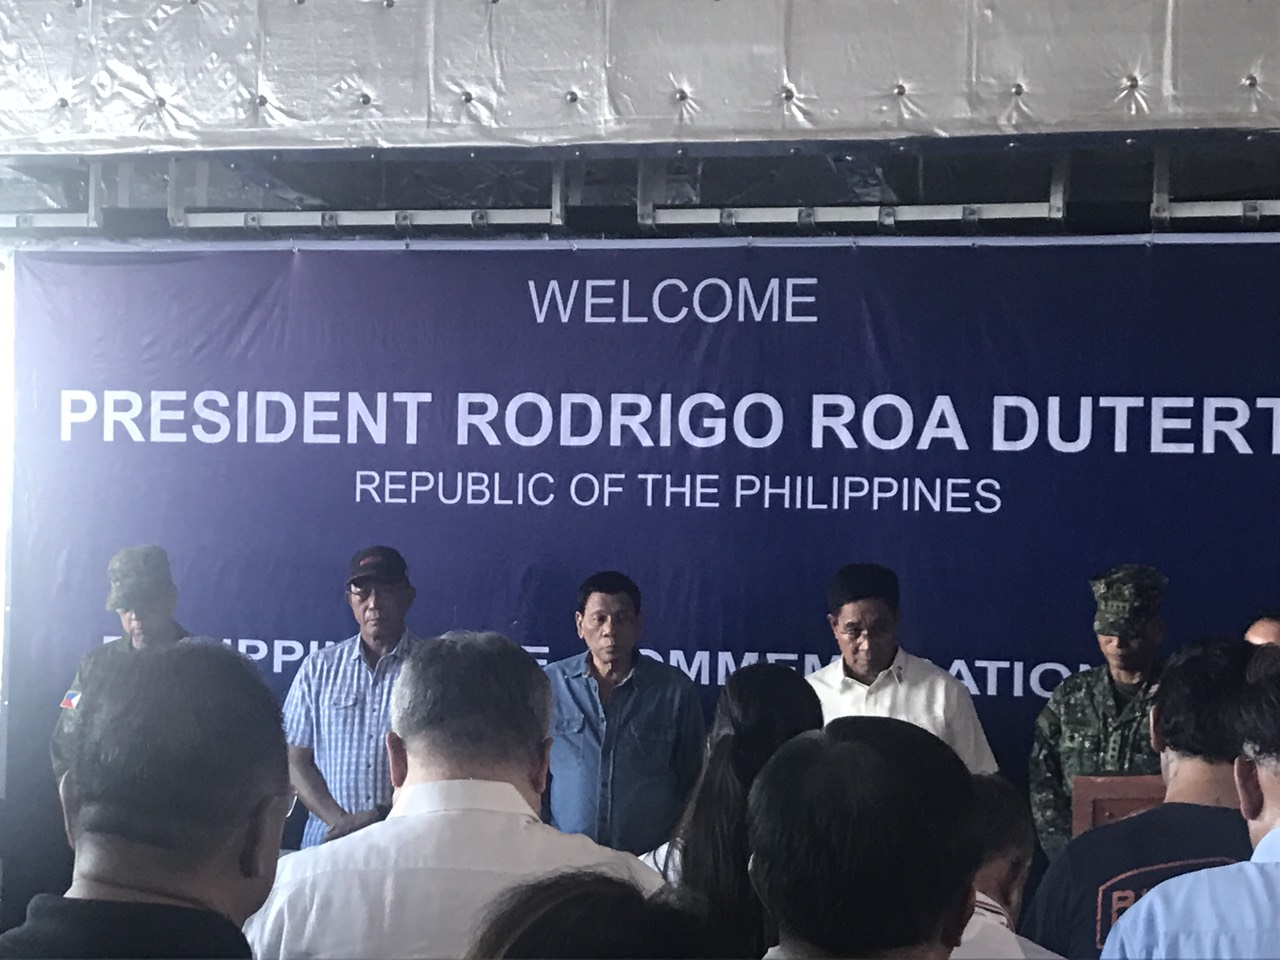 PHILIPPINE RISE. President Rodrigo Duterte arrives at BRP Davao del Sur at around 3:45 pm on May 15, 2018, to commemorate the renaming of Benham Rise as Philippine Rise. Malacau00f1ang pool photo